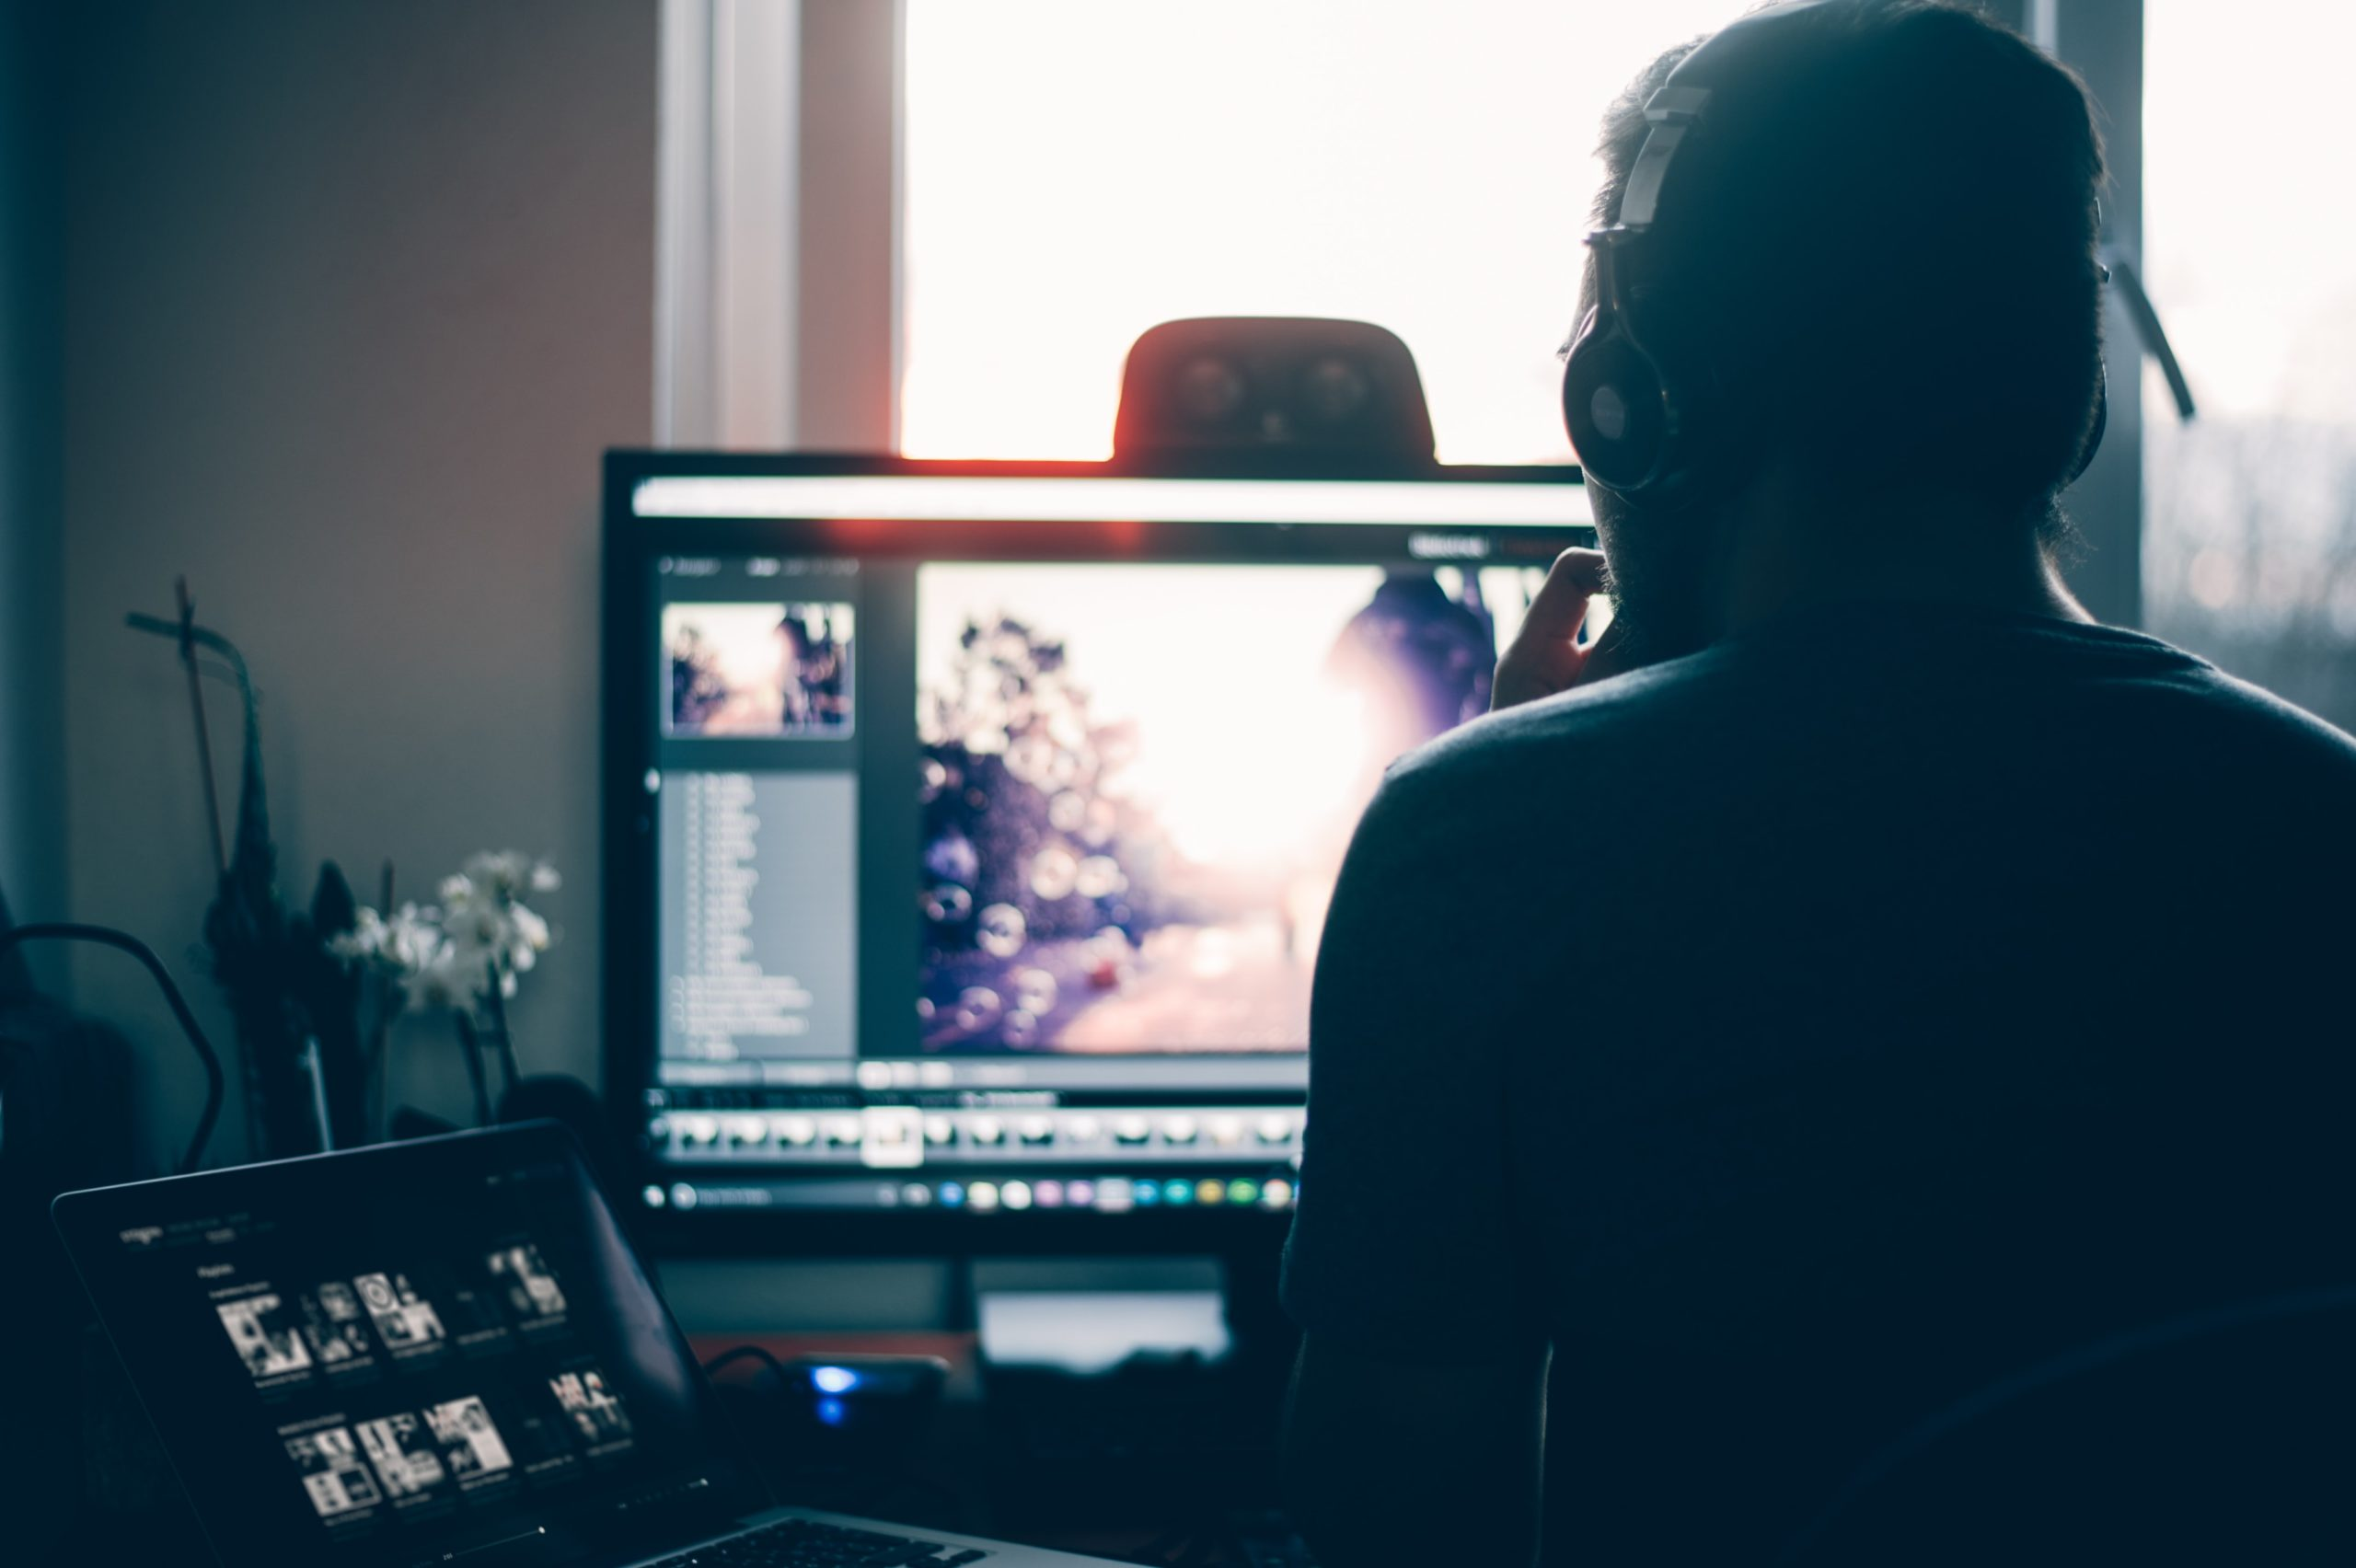 person editing photo on computer